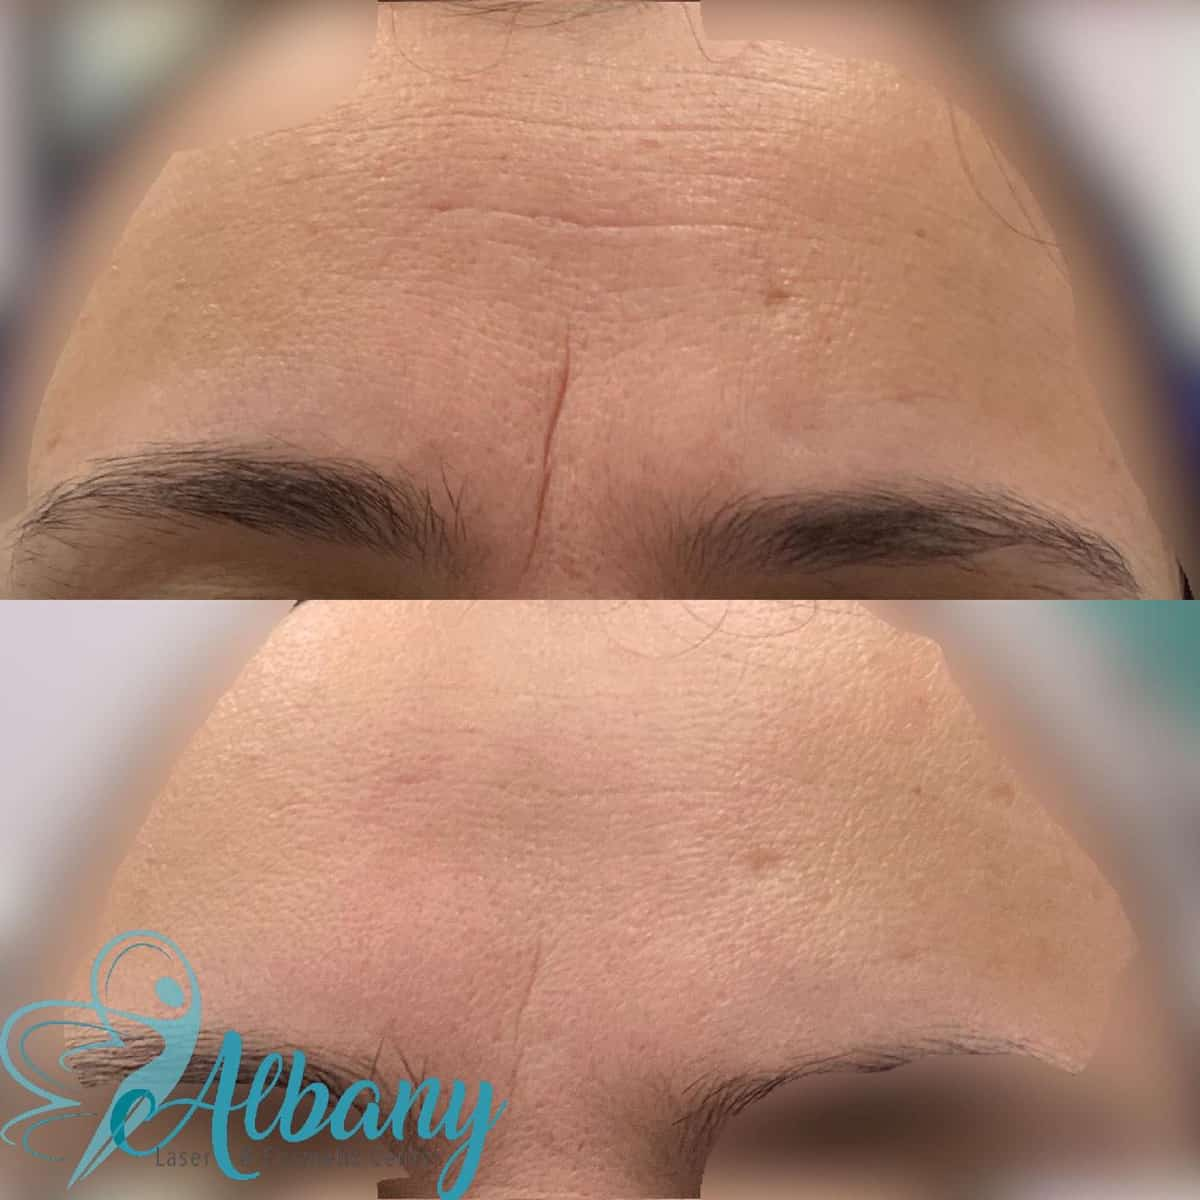 Botox for the frownline